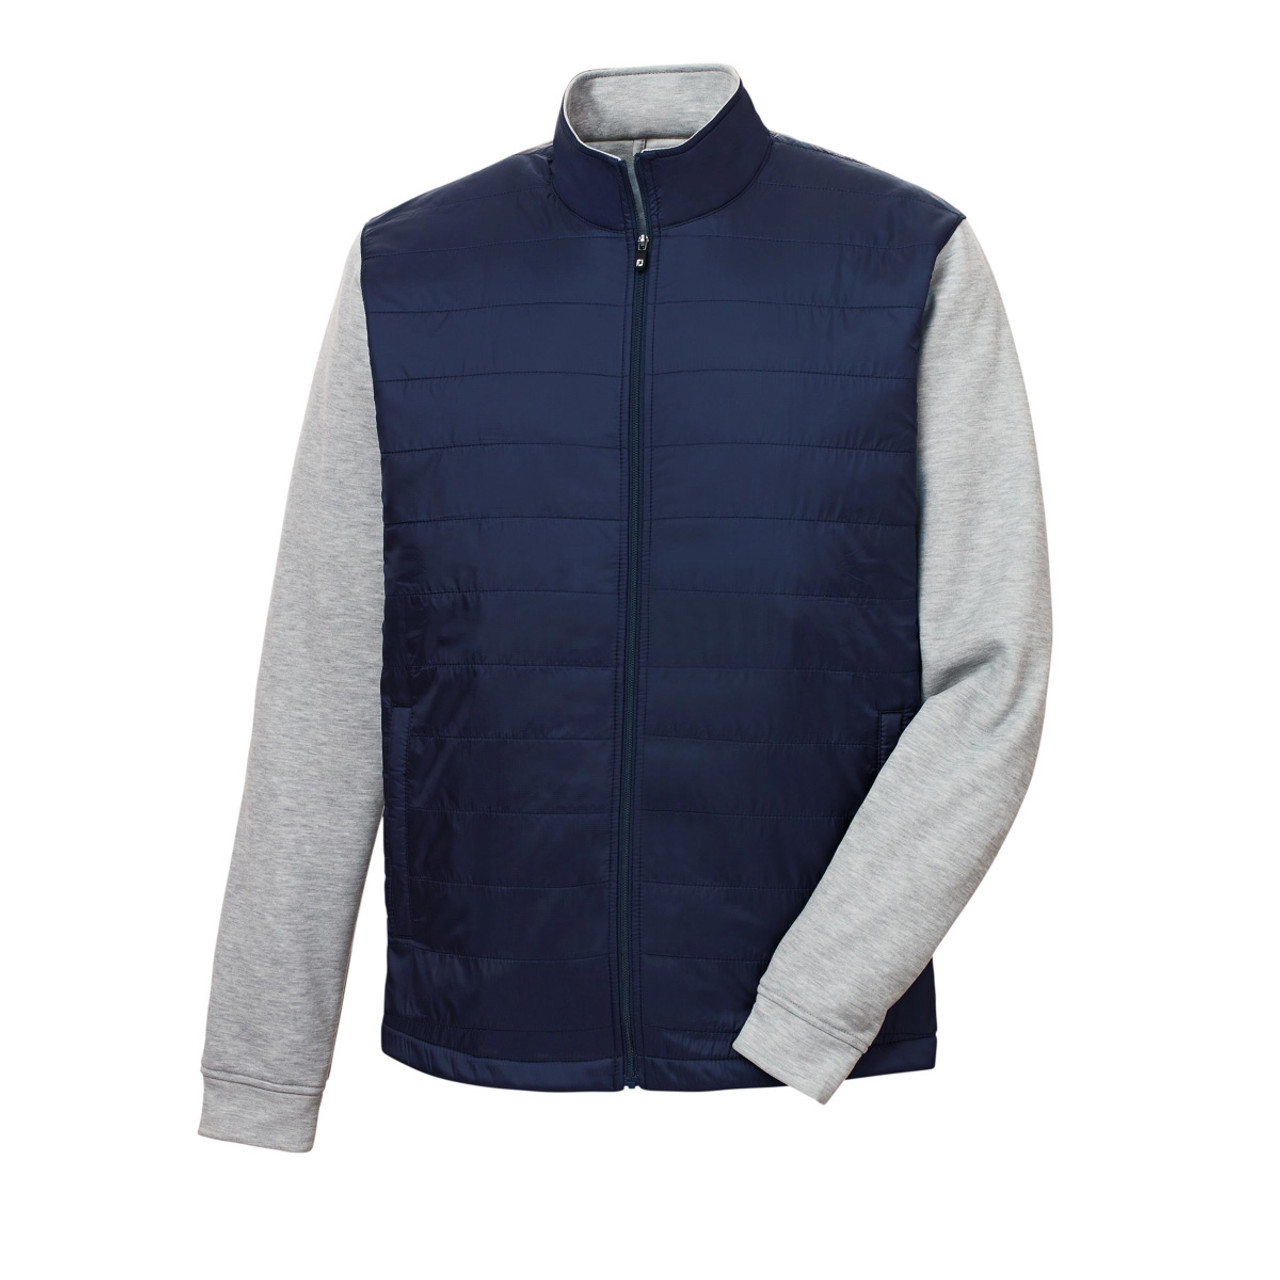 FootJoy Full-Zip Hybrid Jacket - Navy / Heather Grey (25209)